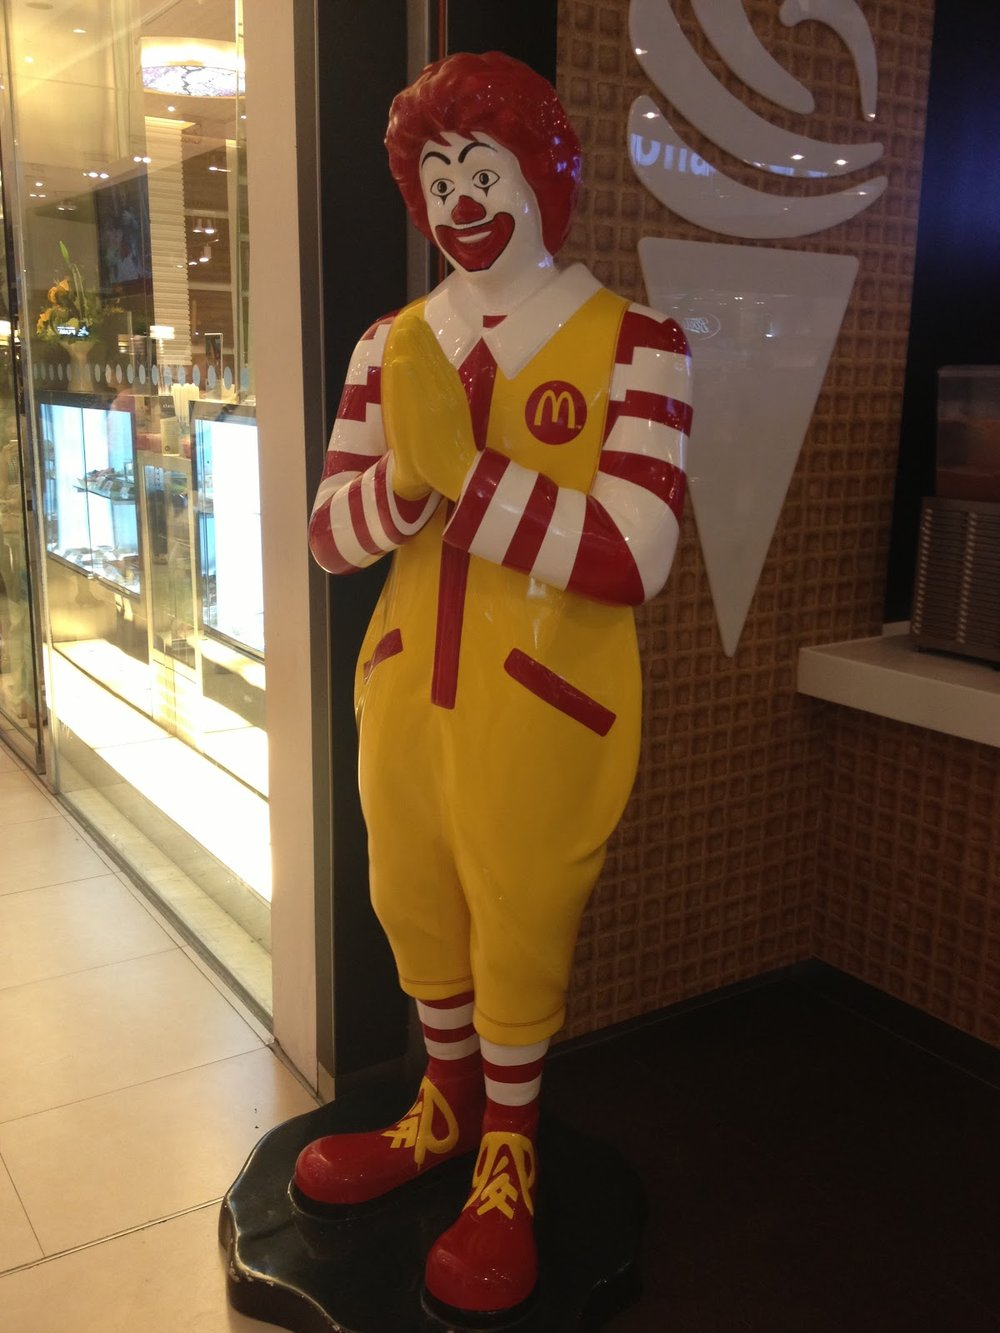 Ronald  McDonald statue giving a traditional Thai wai (greeting, bow) in front of a McDonalds restaurant chain in downtown Bangkok, Thailand